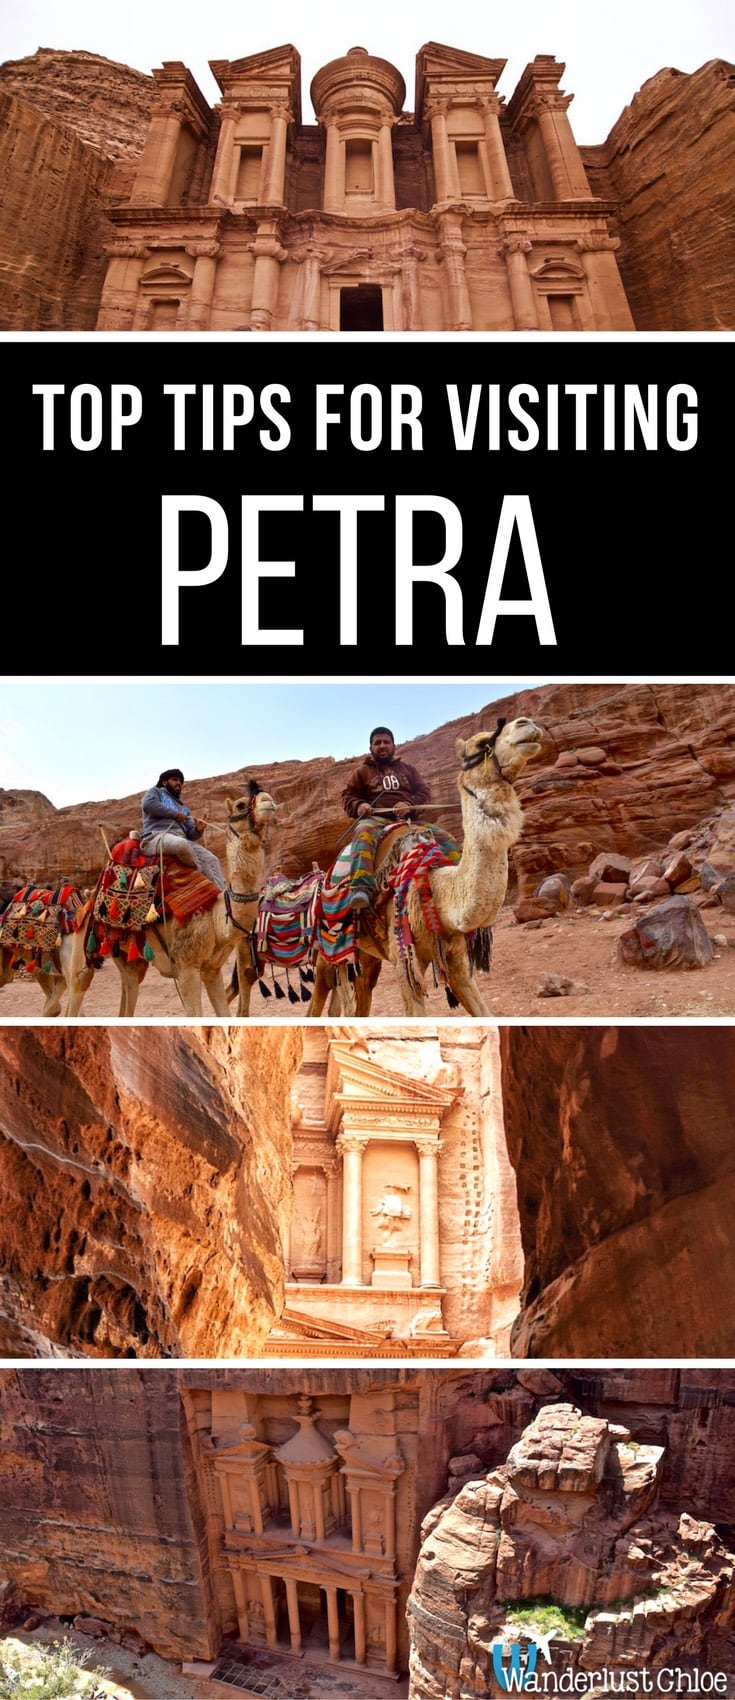 Top Tips For Visiting Petra